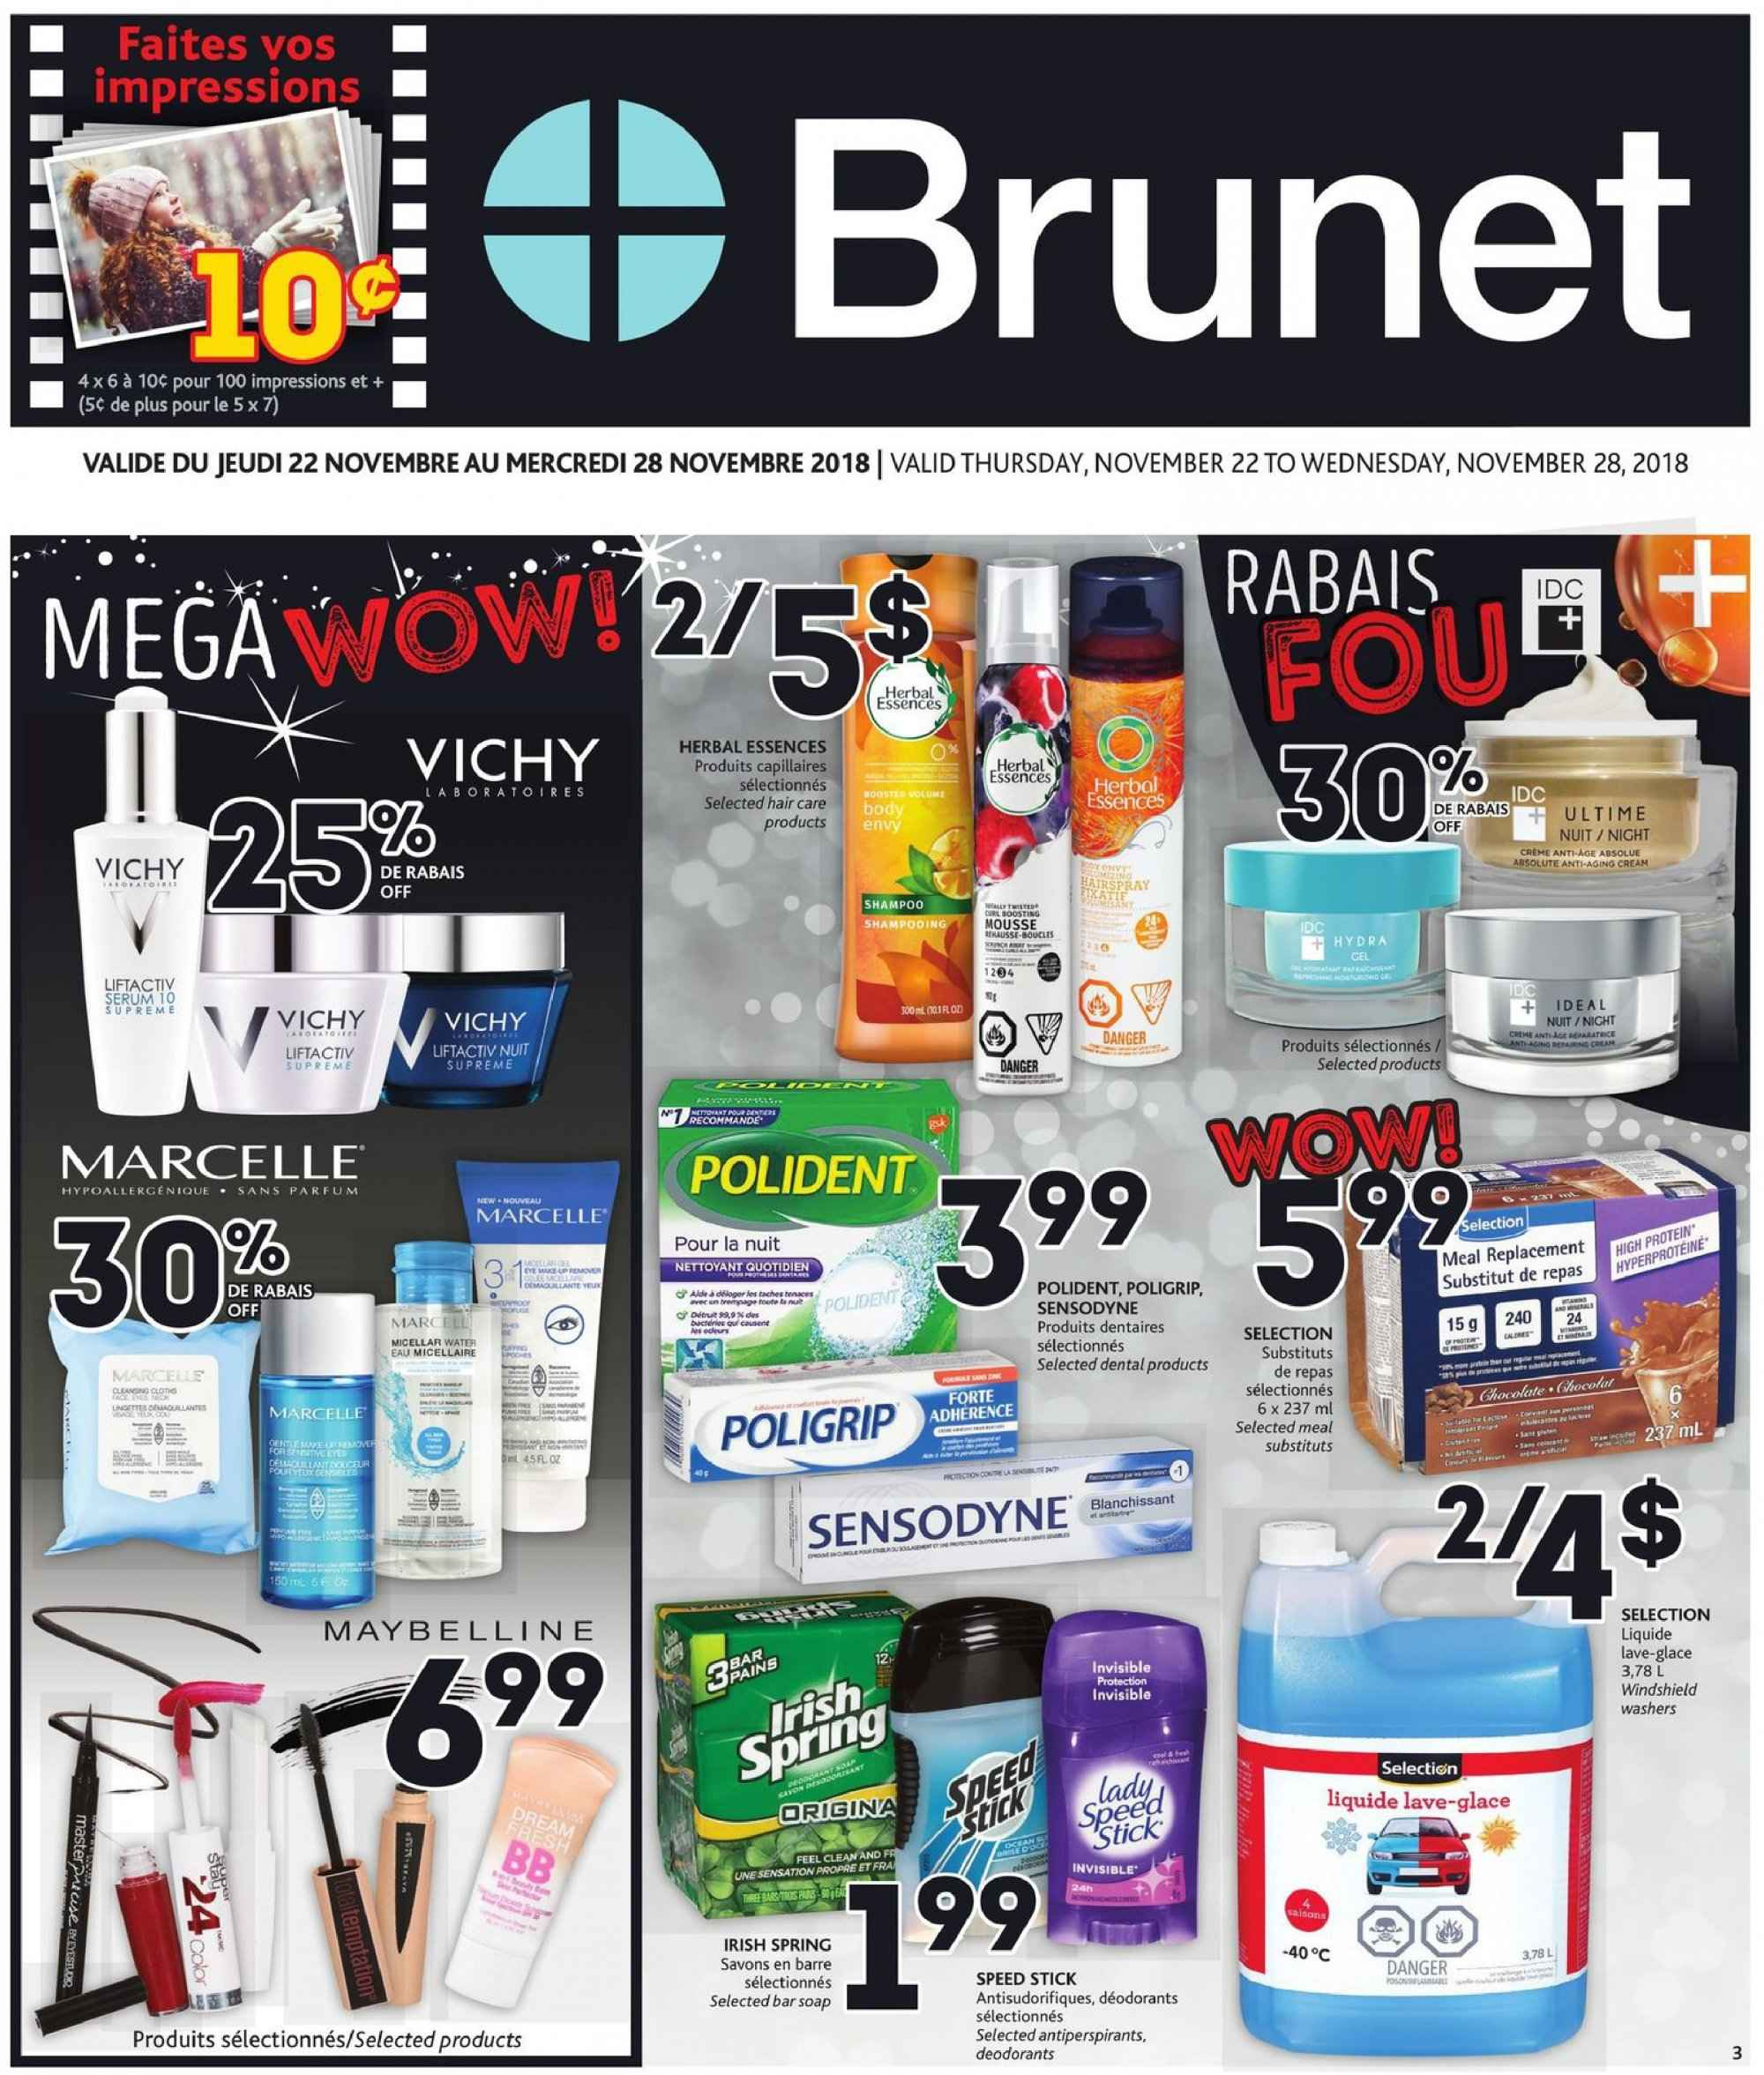 Brunet Flyer - November 22, 2018 - November 28, 2018 - Sales products - water. Page 1.